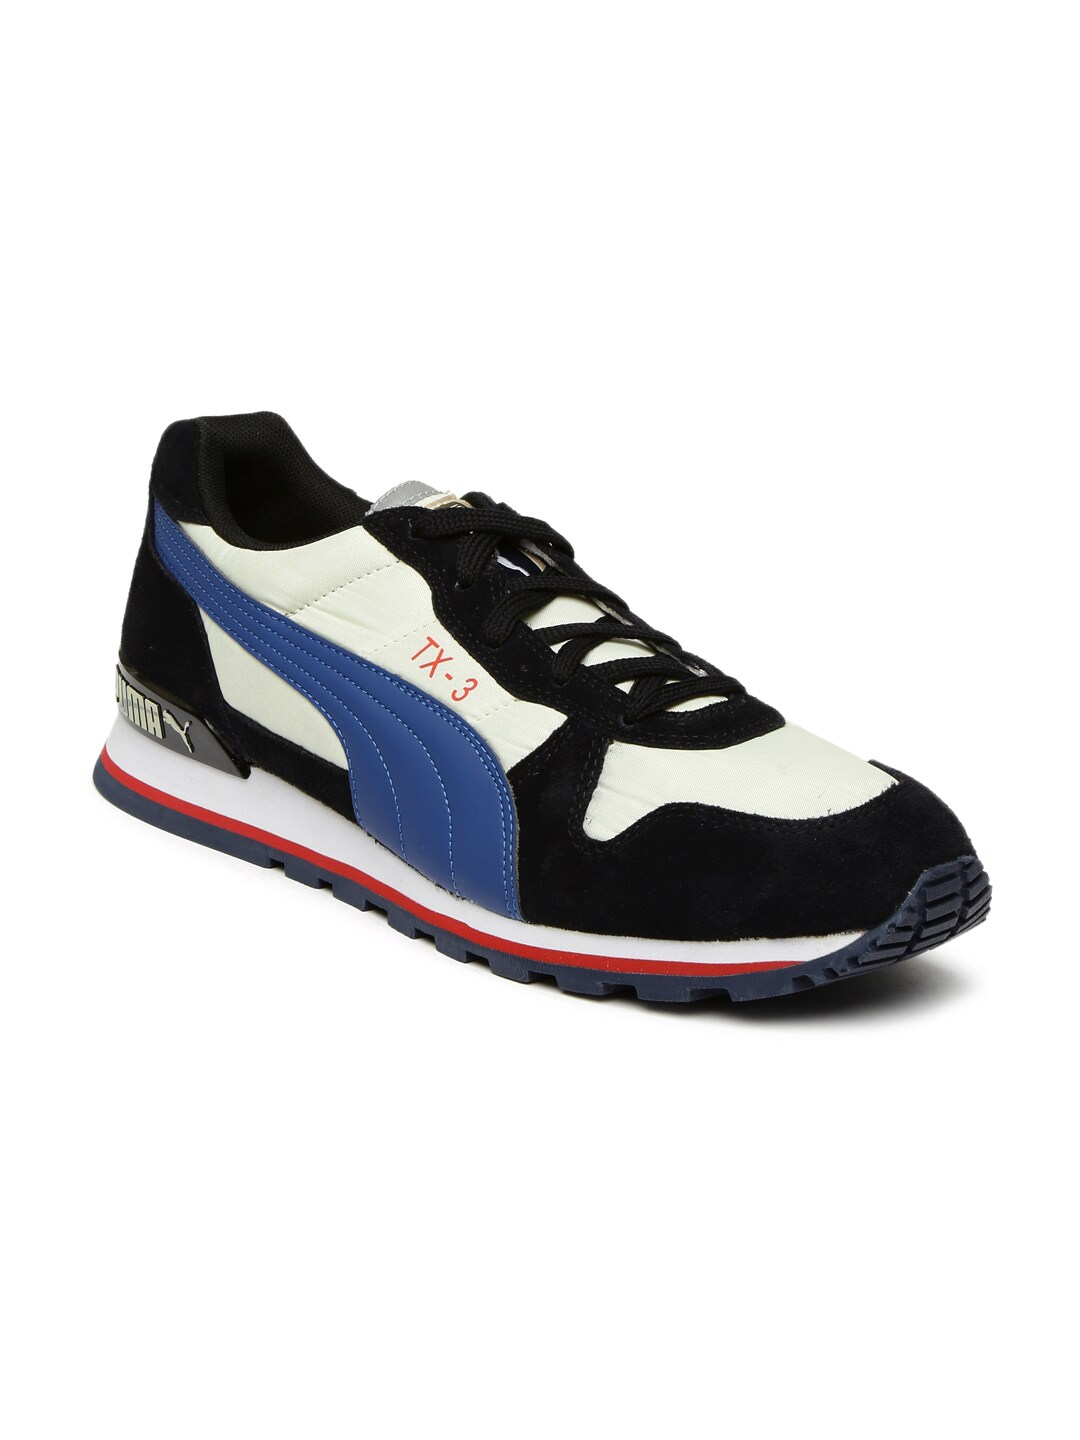 0312d91fd5a8 Puma Men Leather Casual Shoes - Buy Puma Men Leather Casual Shoes online in  India